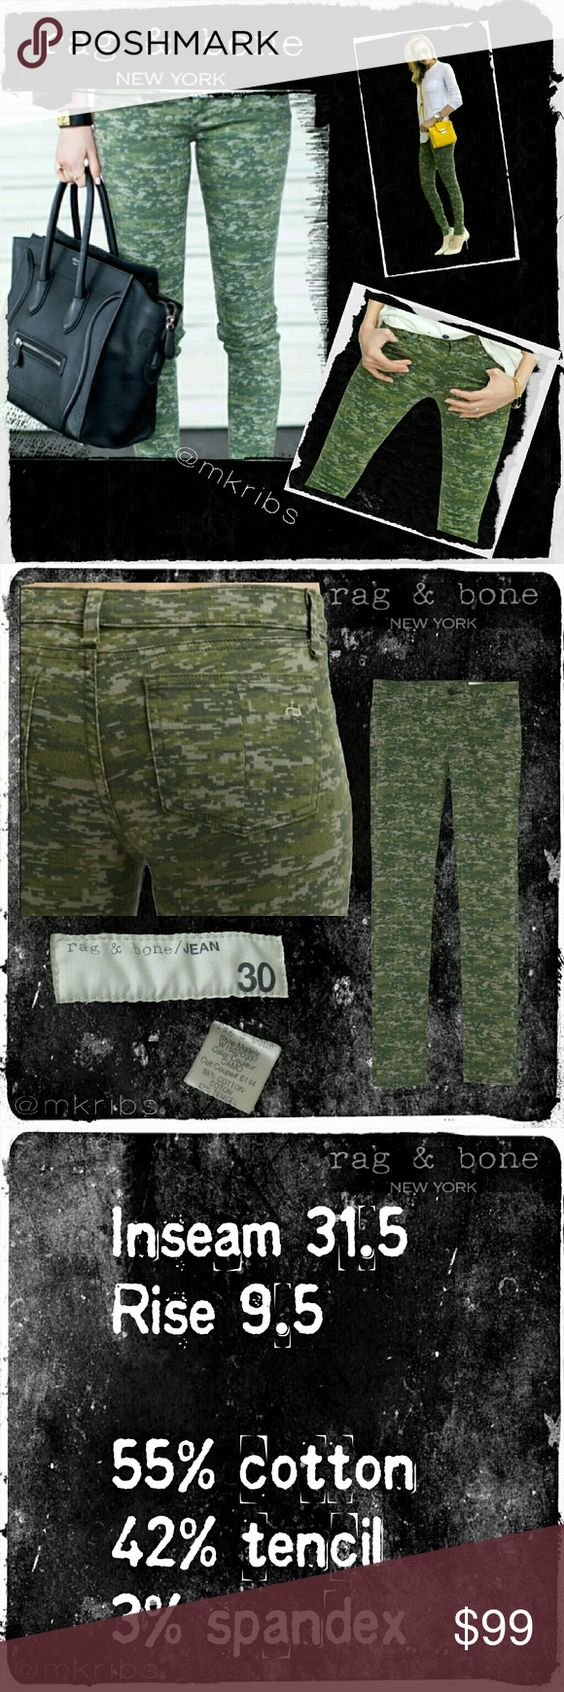 ⭐Sale!!   Rag & bone camo skinny stretch  jeans SALE PRICE Rag & bone pixelated, digital style camouflage skinny jeans with stretch. So fun and versatile. More details above. NO TRADES PLEASE! OFFERS WELCOME THROUGH OFFER FEATURE ONLY PLEASE! rag & bone Jeans Skinny